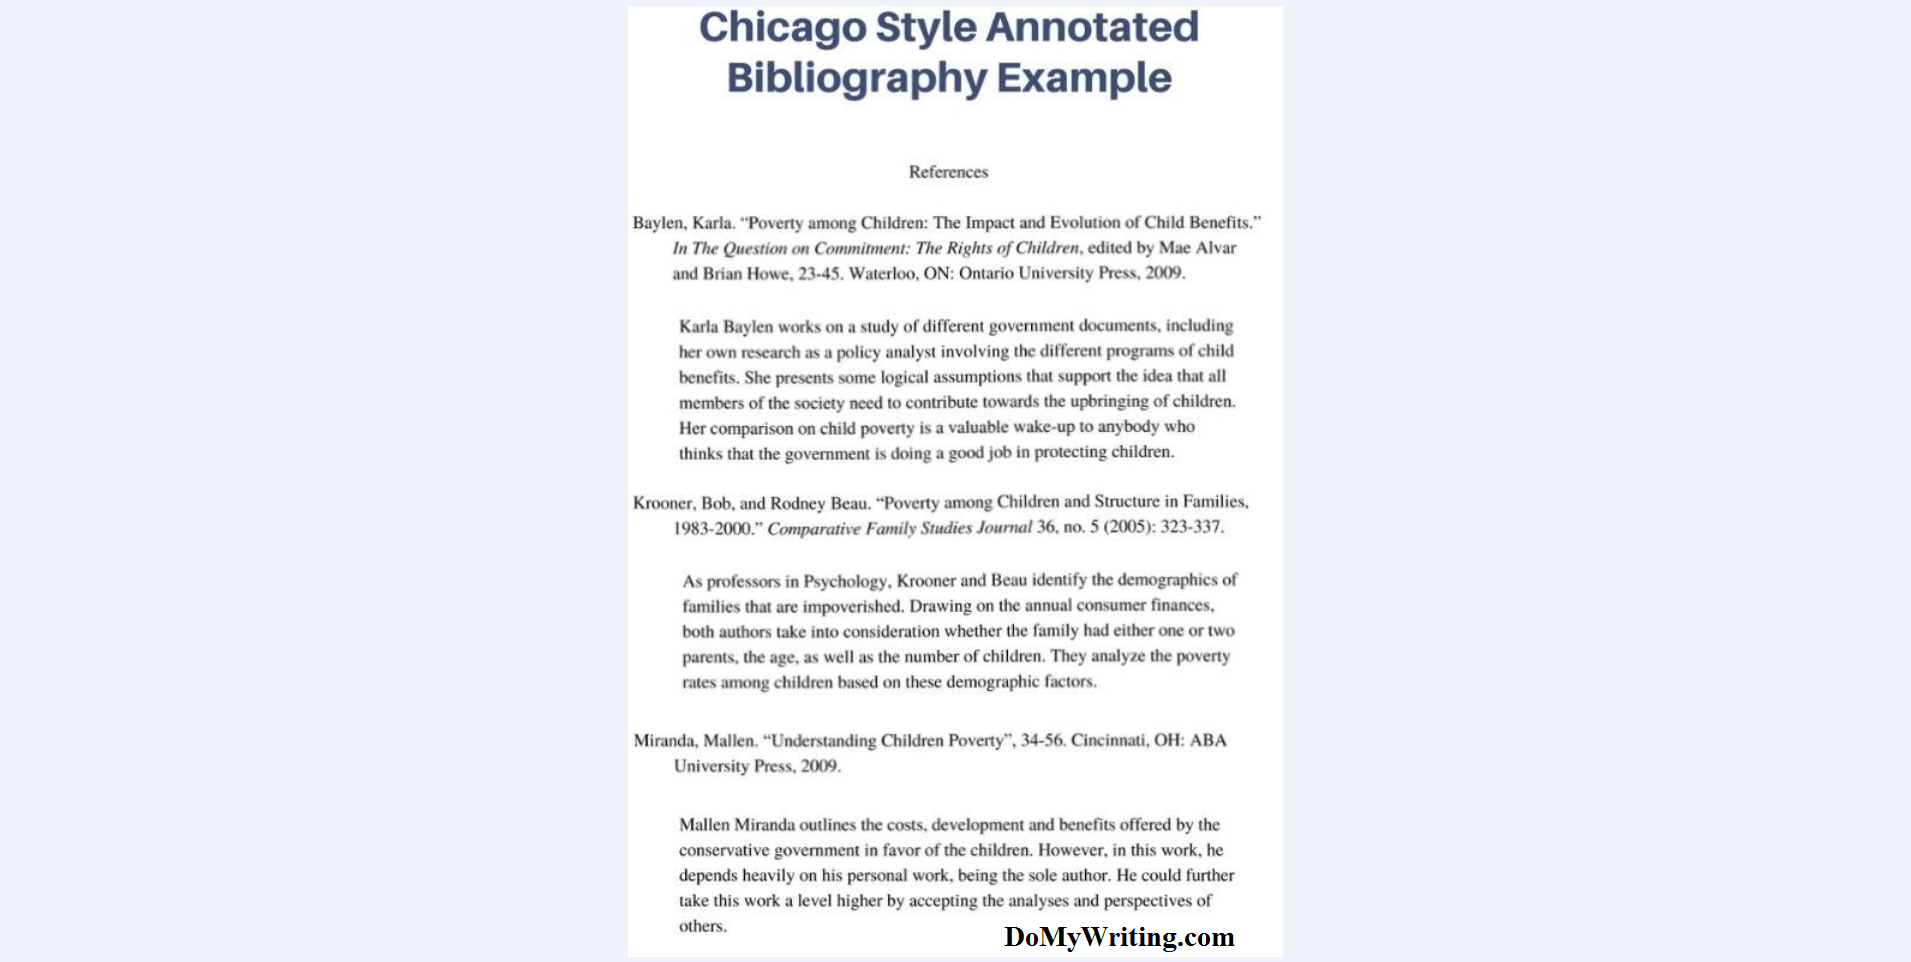 003 Annotated Bibliography Example Chicago Research Imposing Paper Proposal And Full